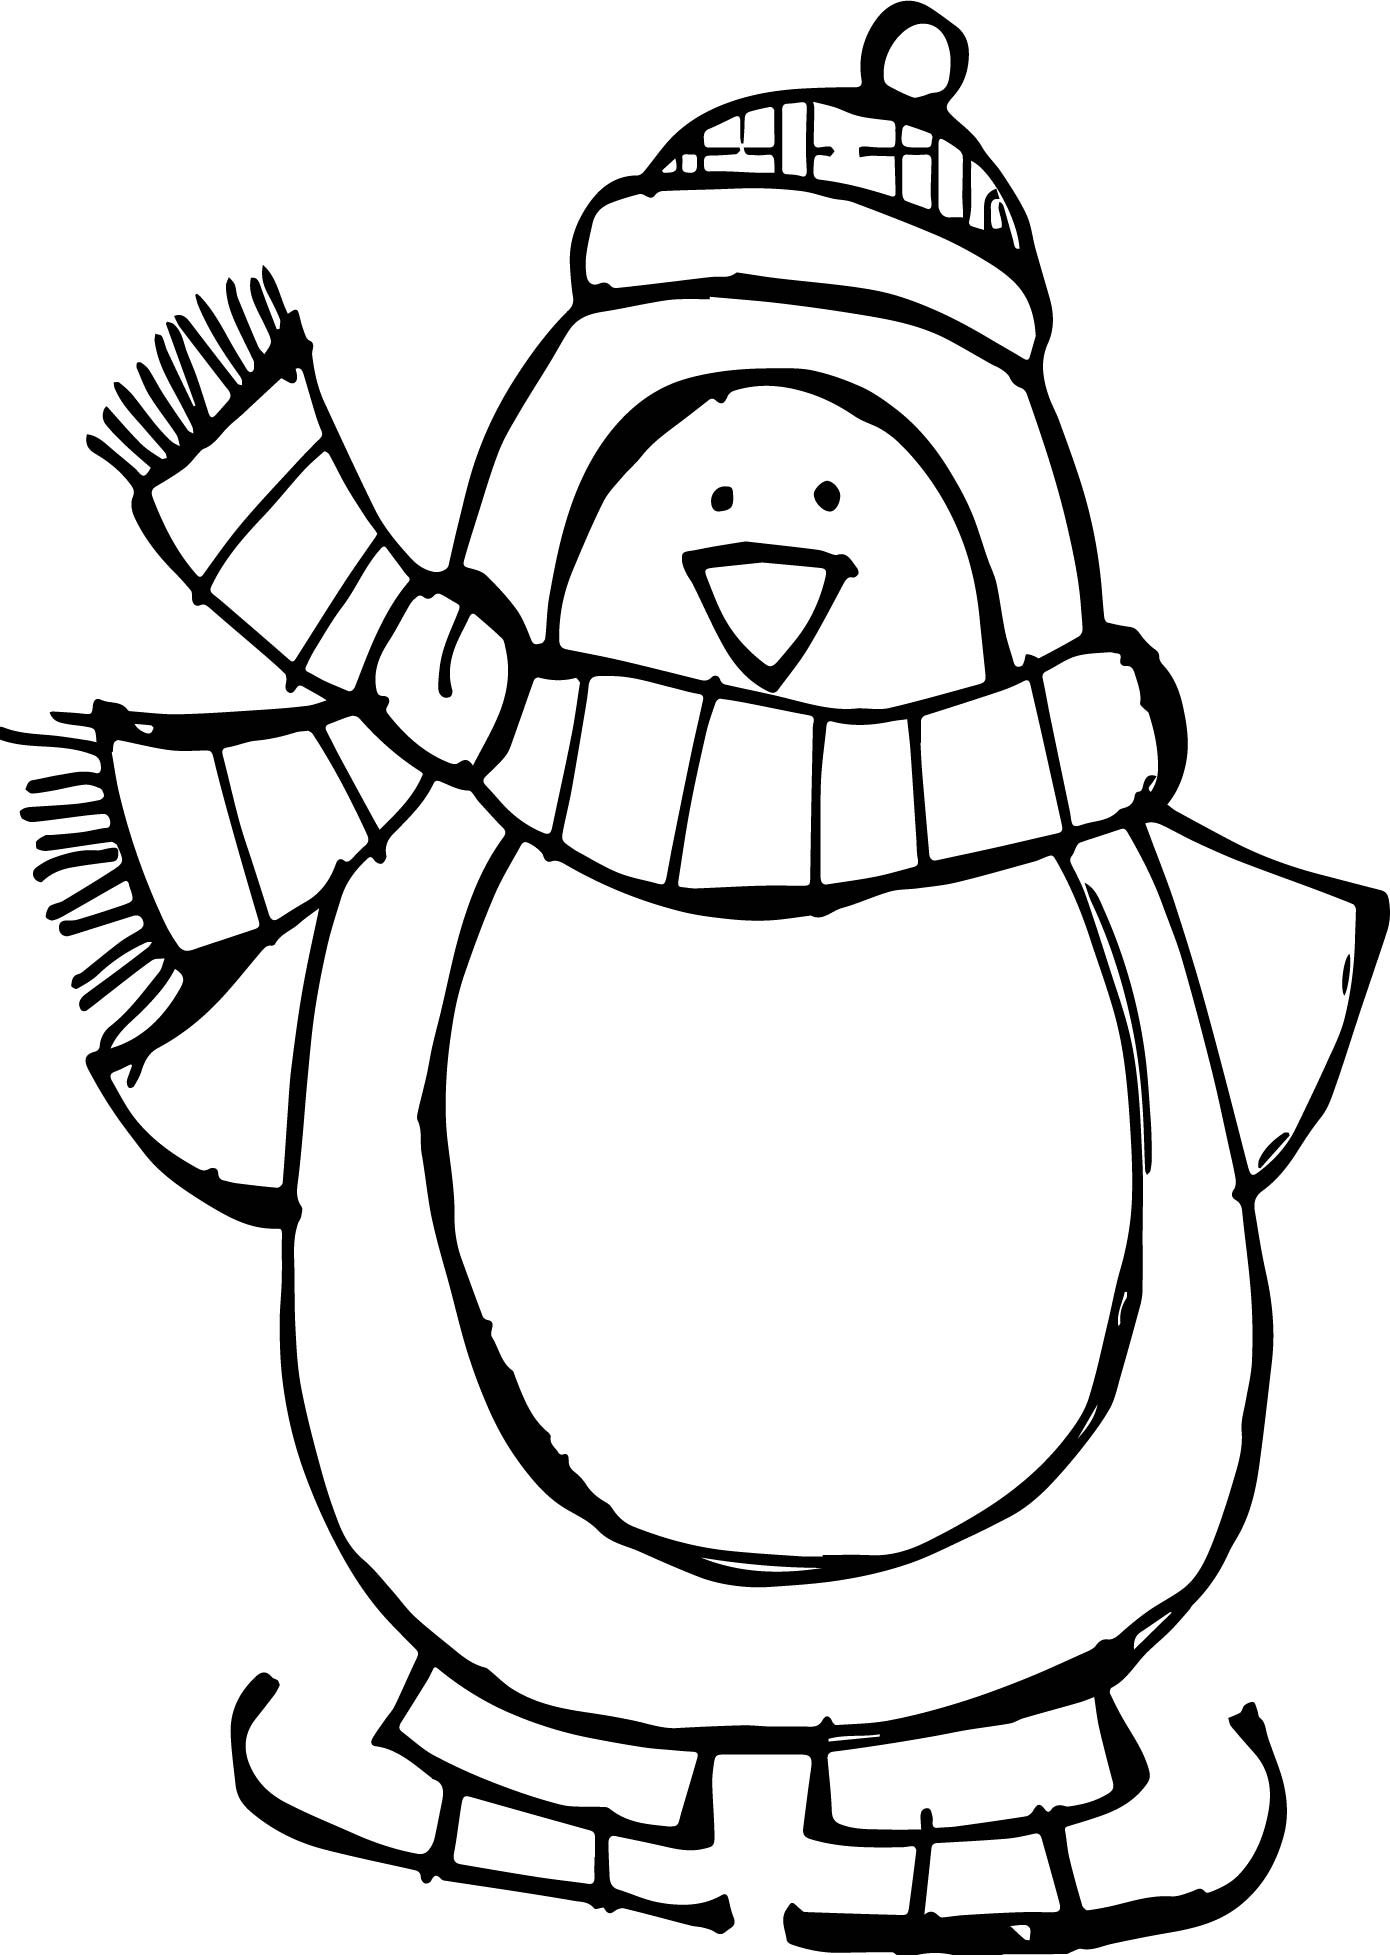 coloring penguins get this cute penguin coloring pages 47859 coloring penguins